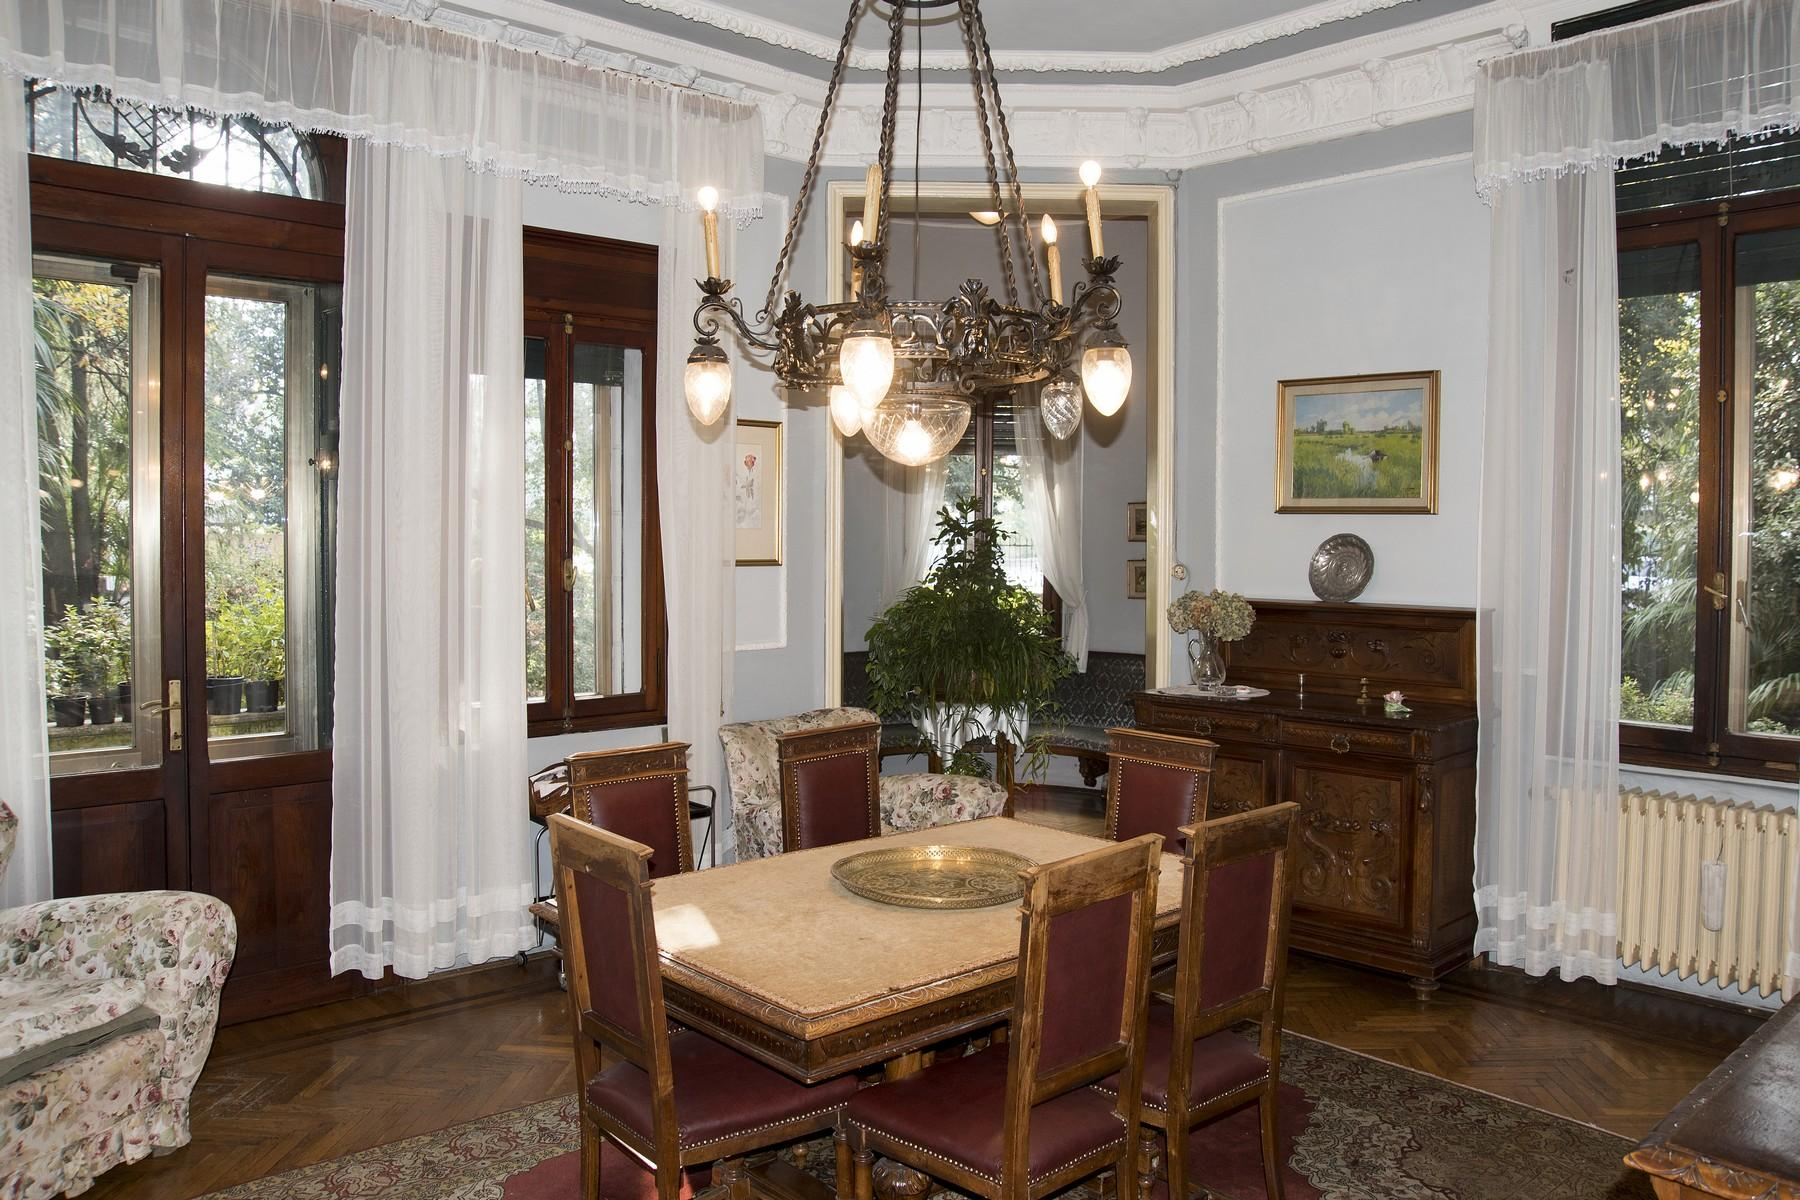 Wonderful Art Nouveau villa in the heart of Treviso - 8